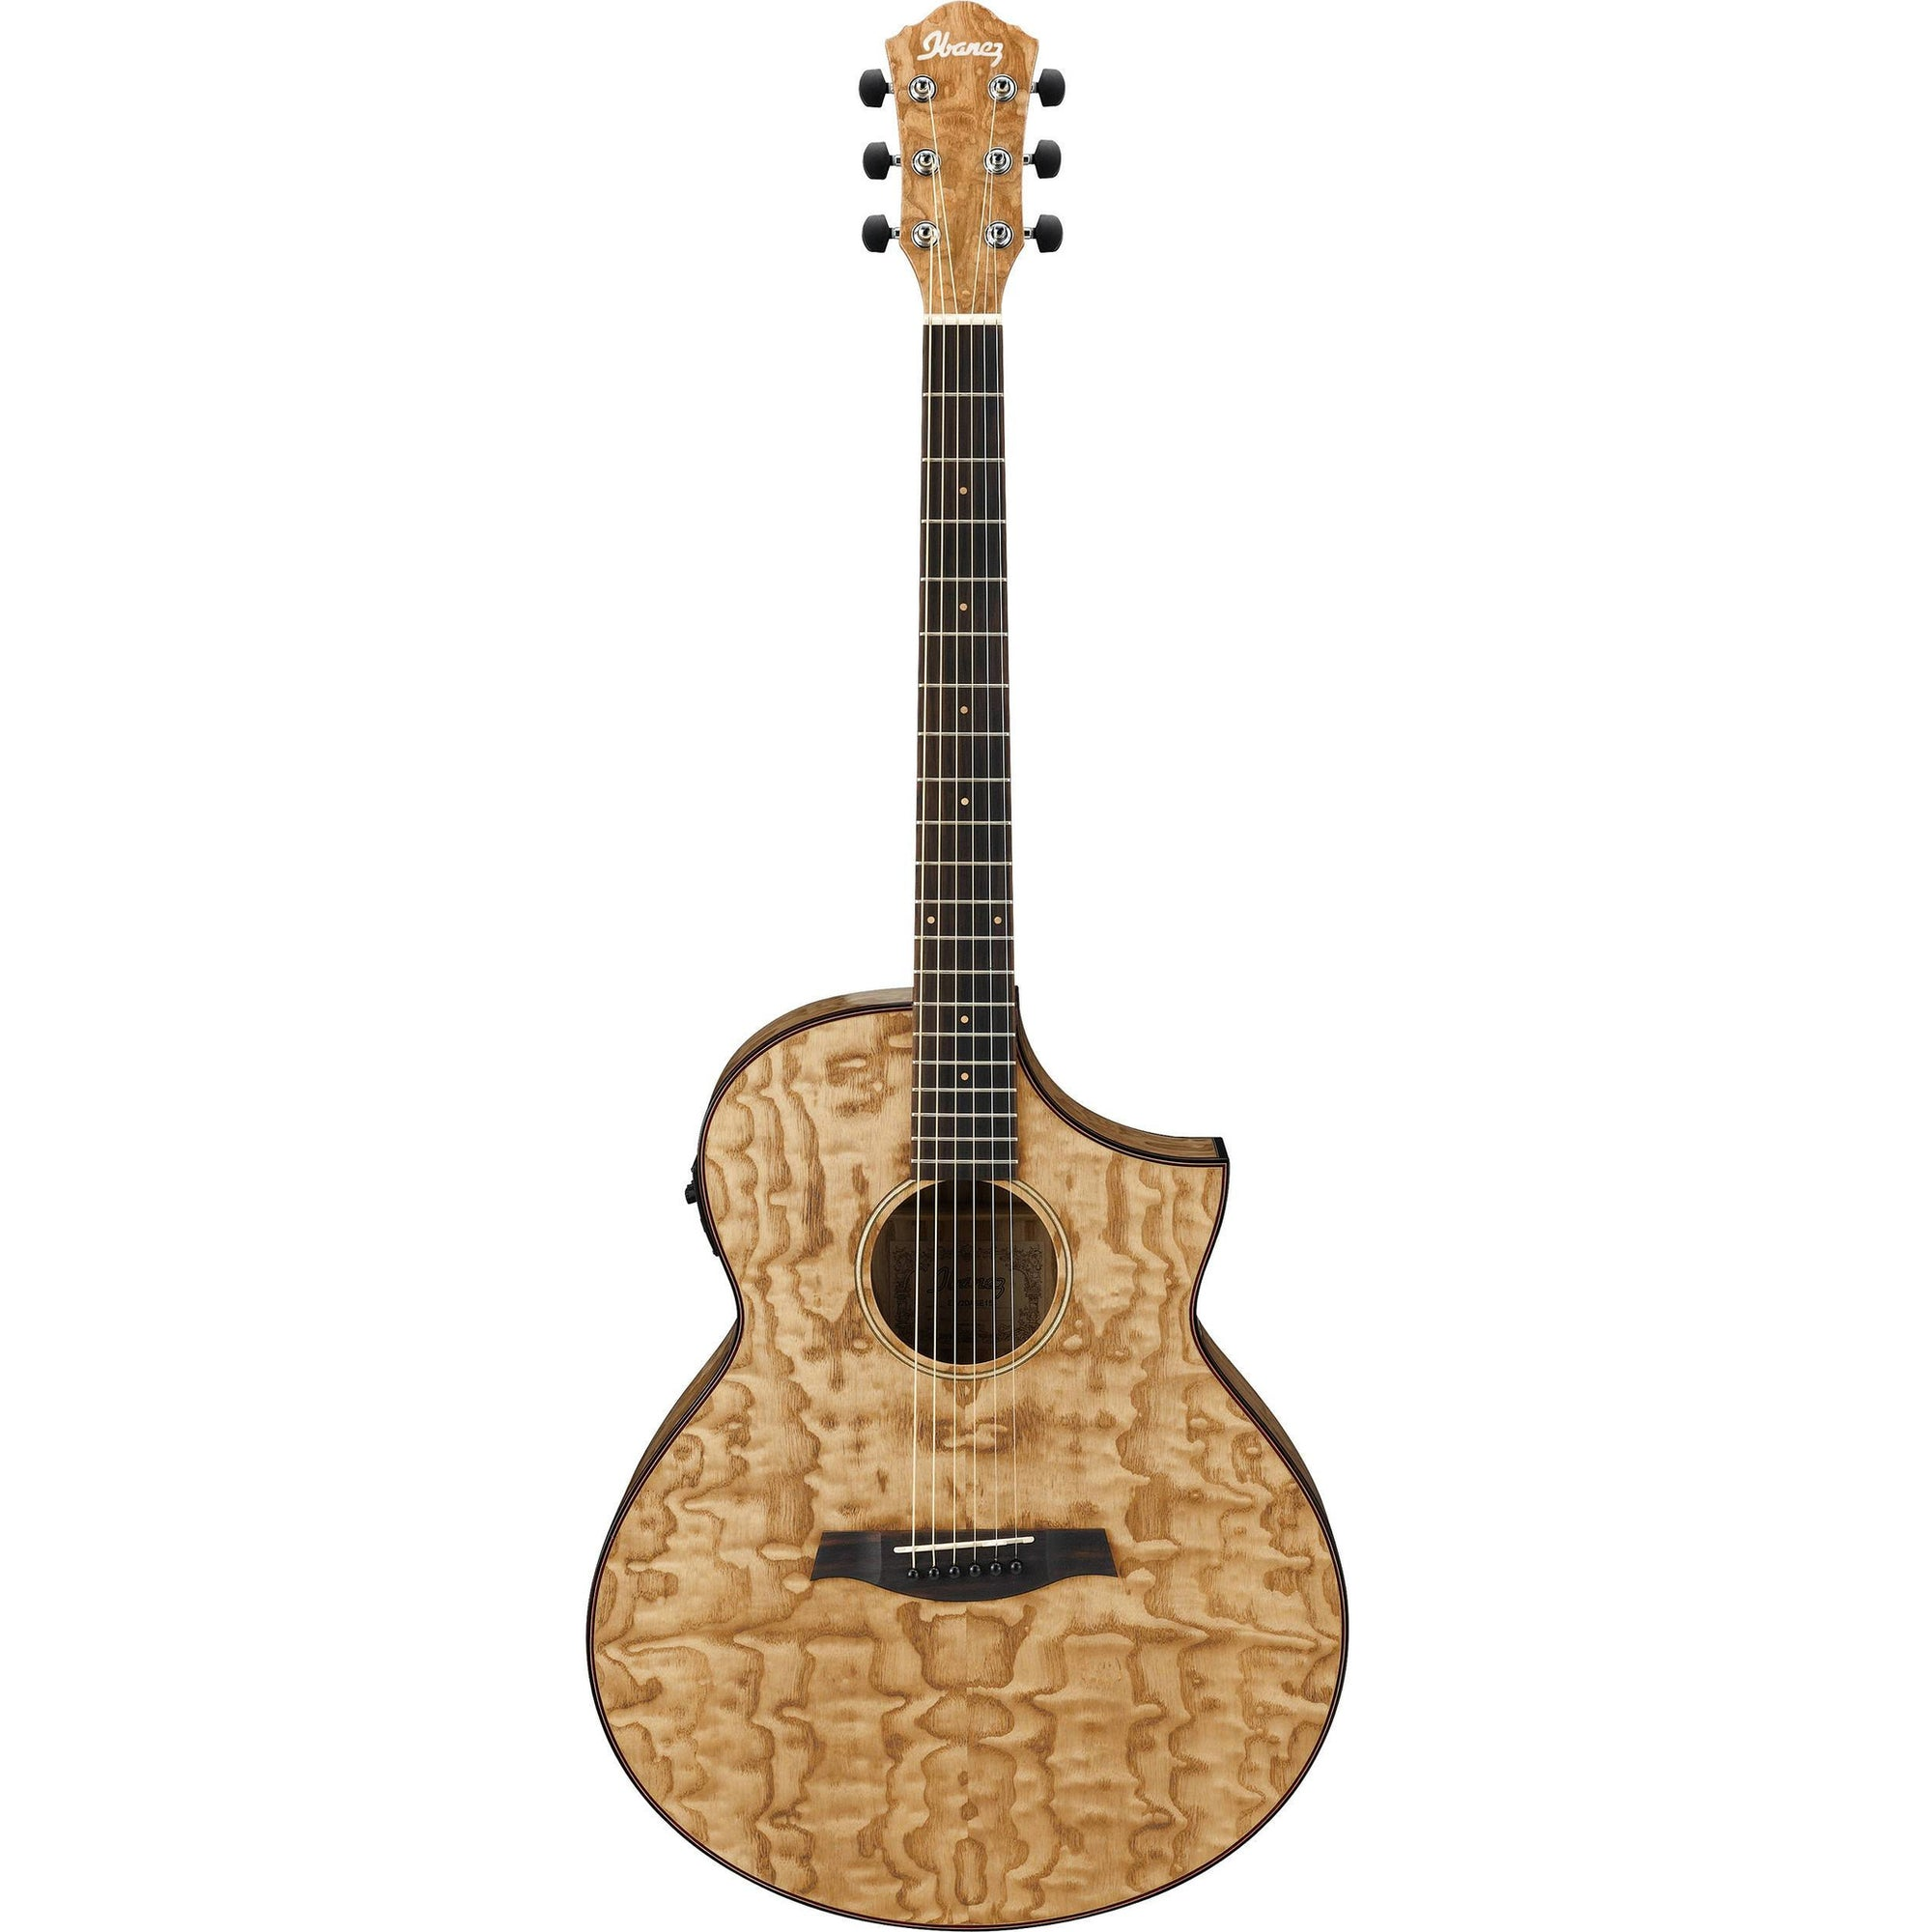 Ibanez AEW40ASNT Exotic Wood Series Acoustic-Electric Guitar - Figured Ash